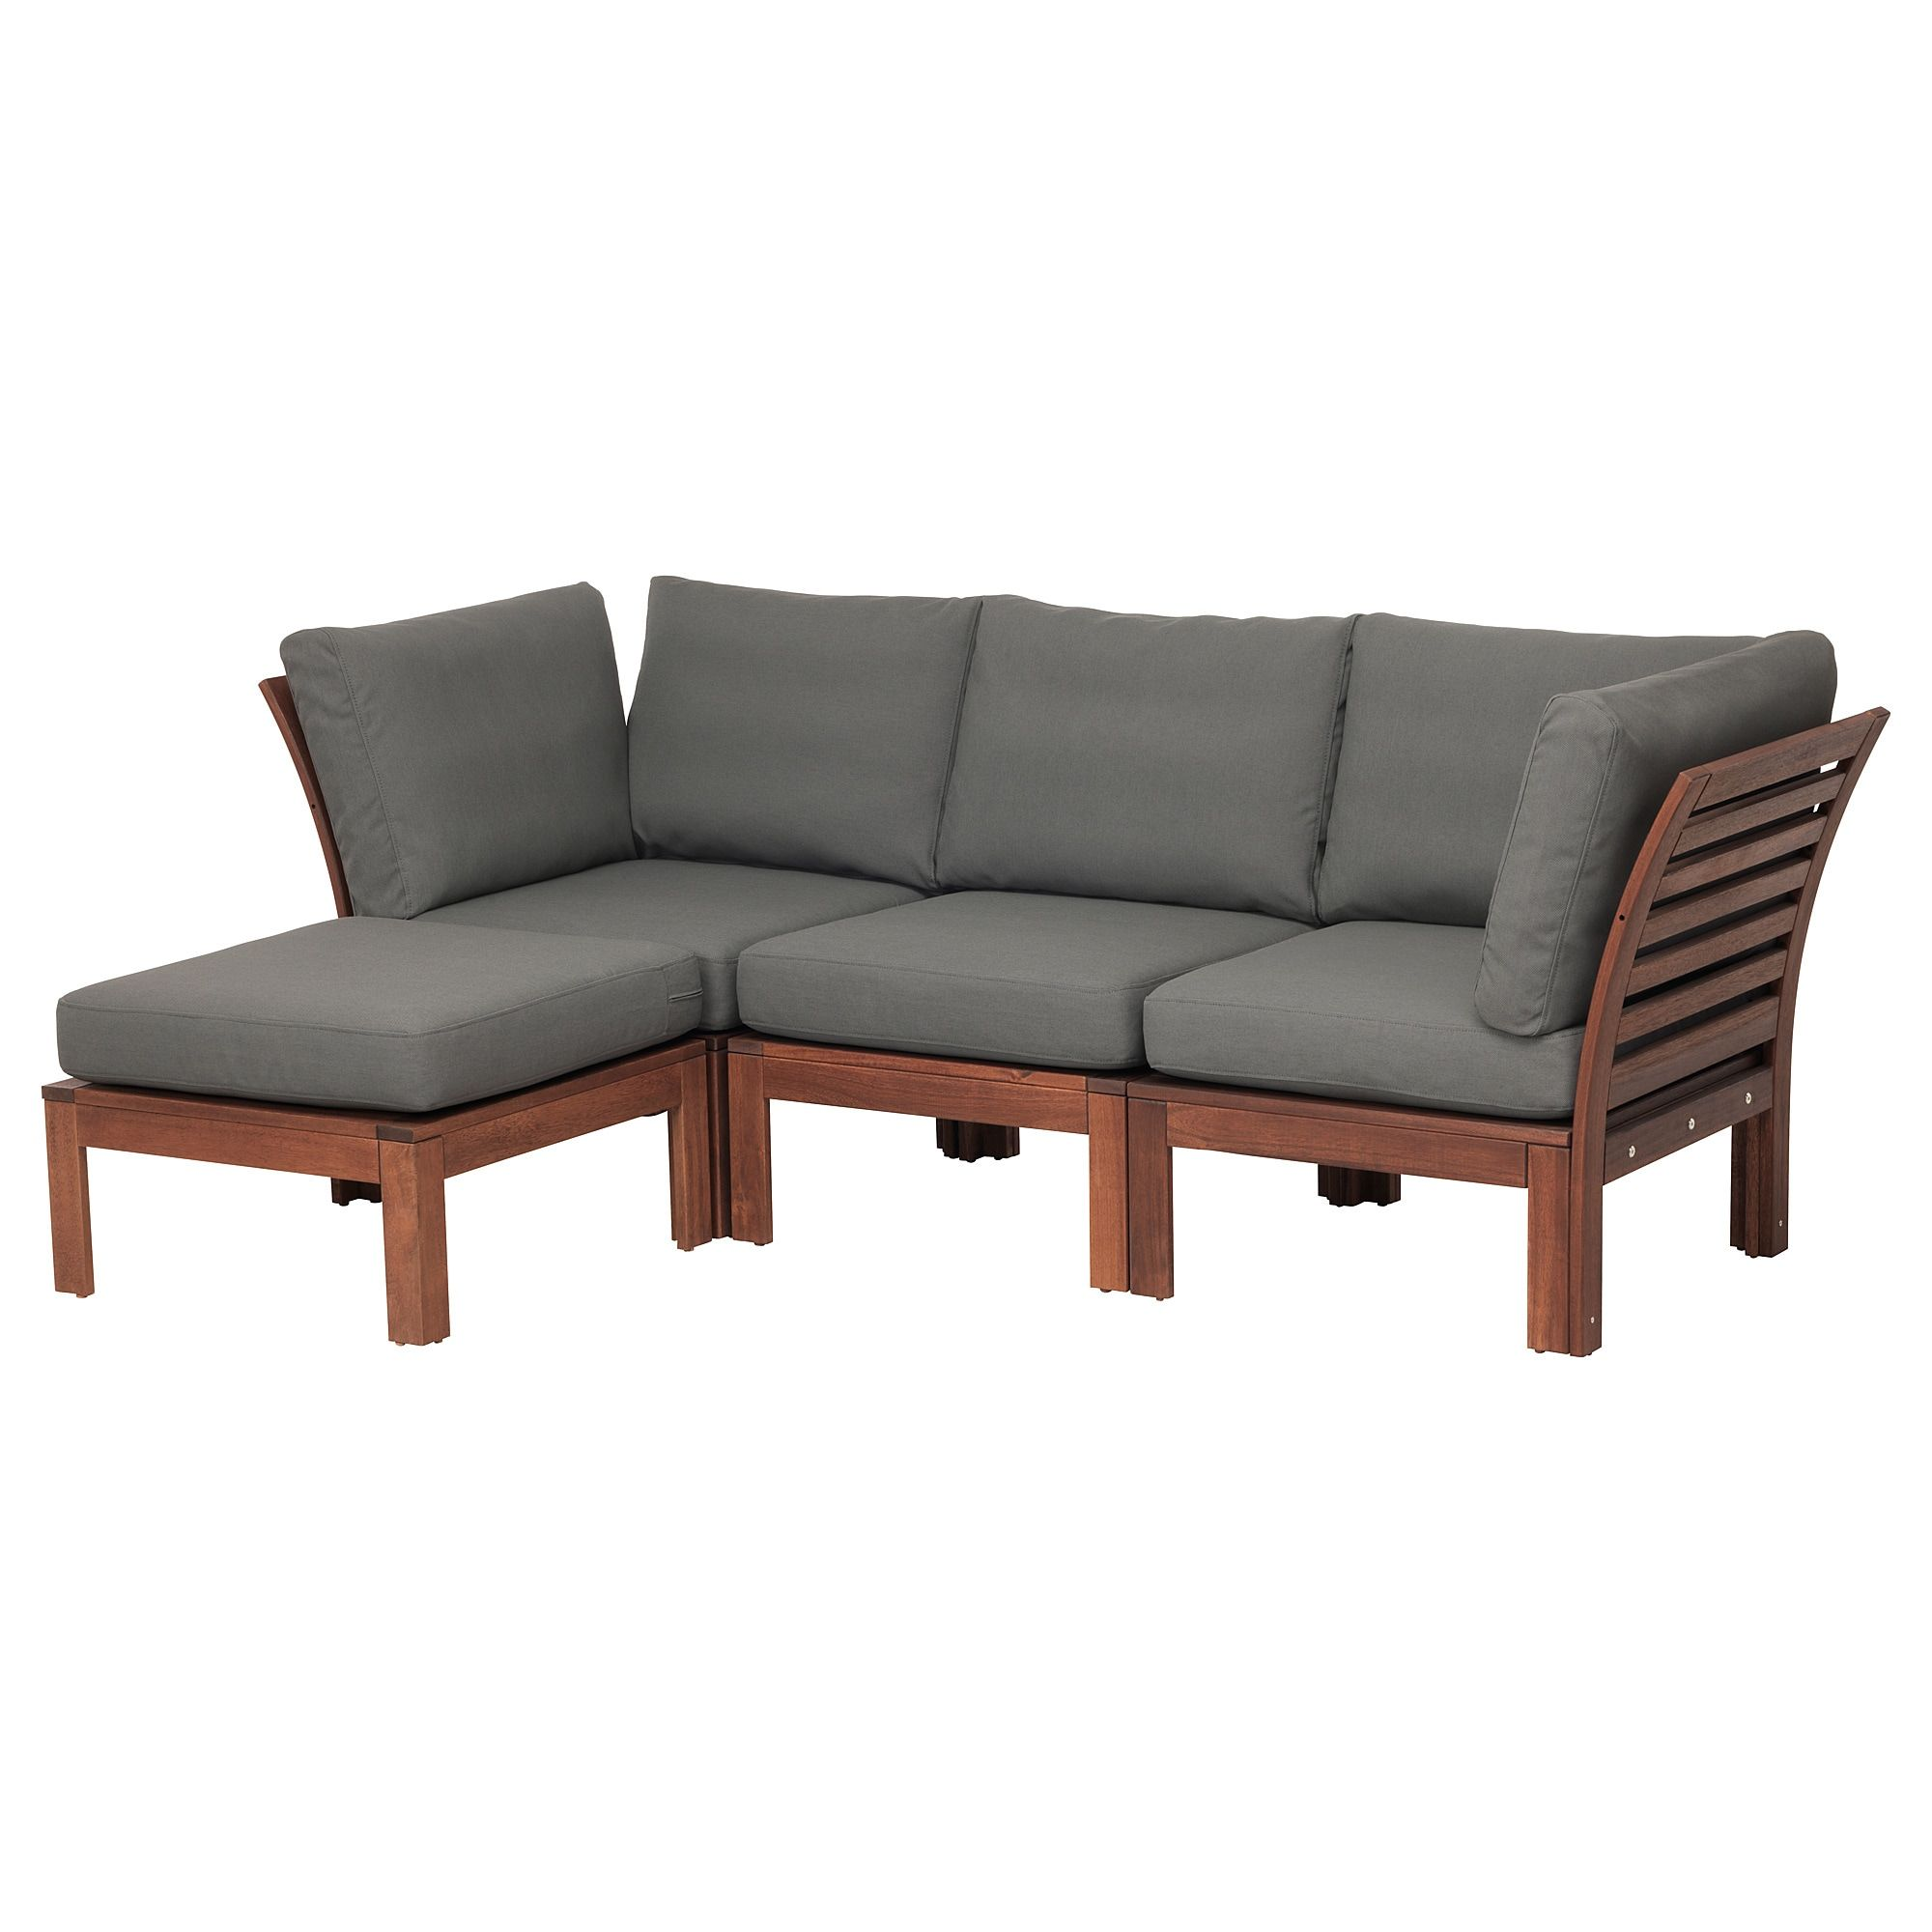 Applaro 3 Seat Modular Sofa Outdoor Brown Stained With Footstool Brown Stained Froson Duvholmen Dark Gray 56 1 4 87 3 4x31 1 2x33 1 8 With Images Outdoor Lounge Furniture Wooden Outdoor Furniture Modular Sofa